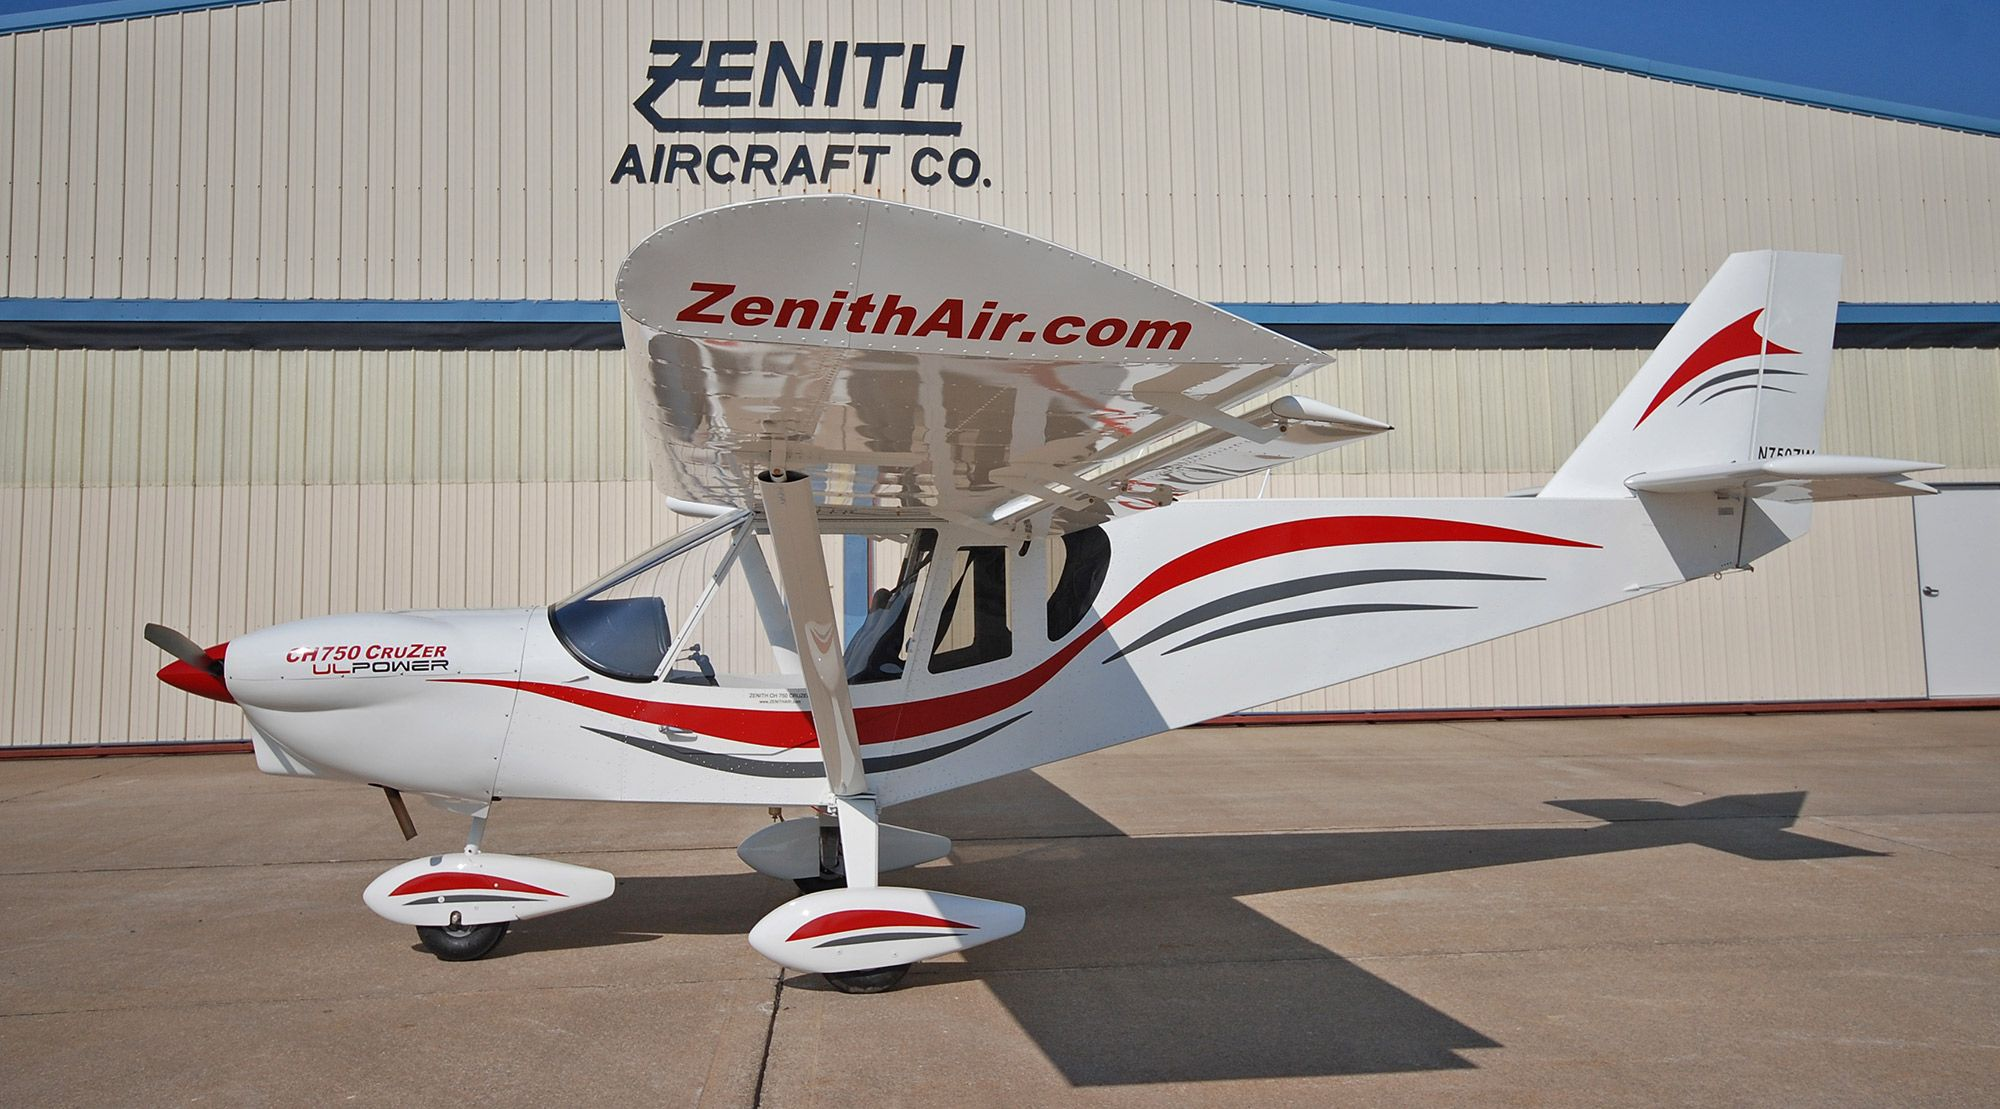 750 Cruzer Light Sport Aircraft Zenith Aircraft